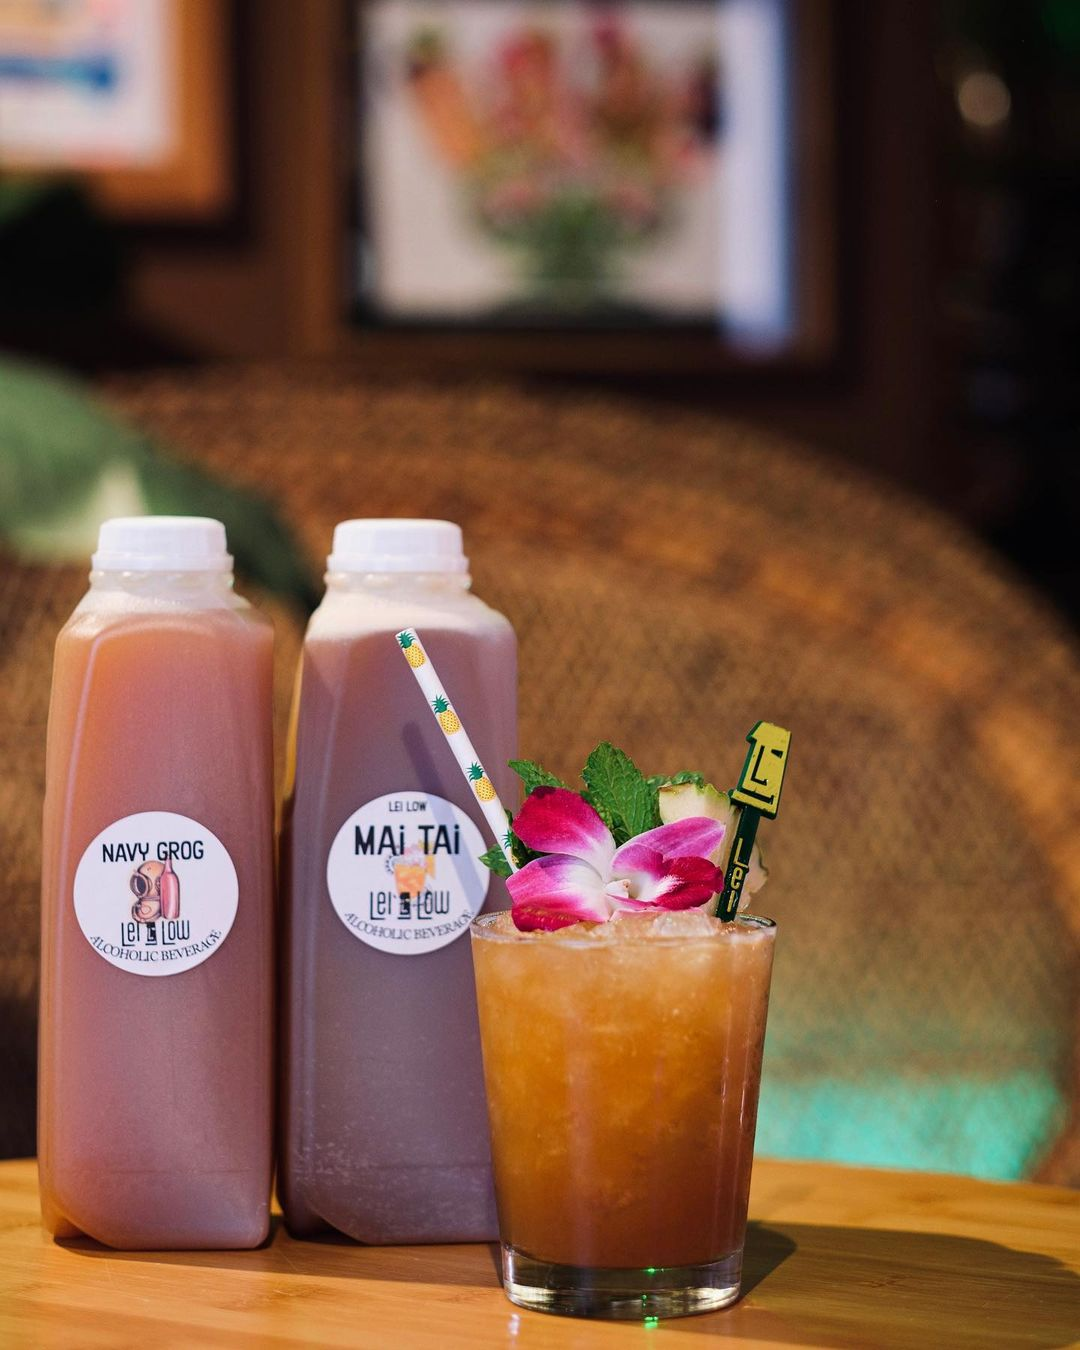 a mai tai next to two plastic cartons of takeout booze